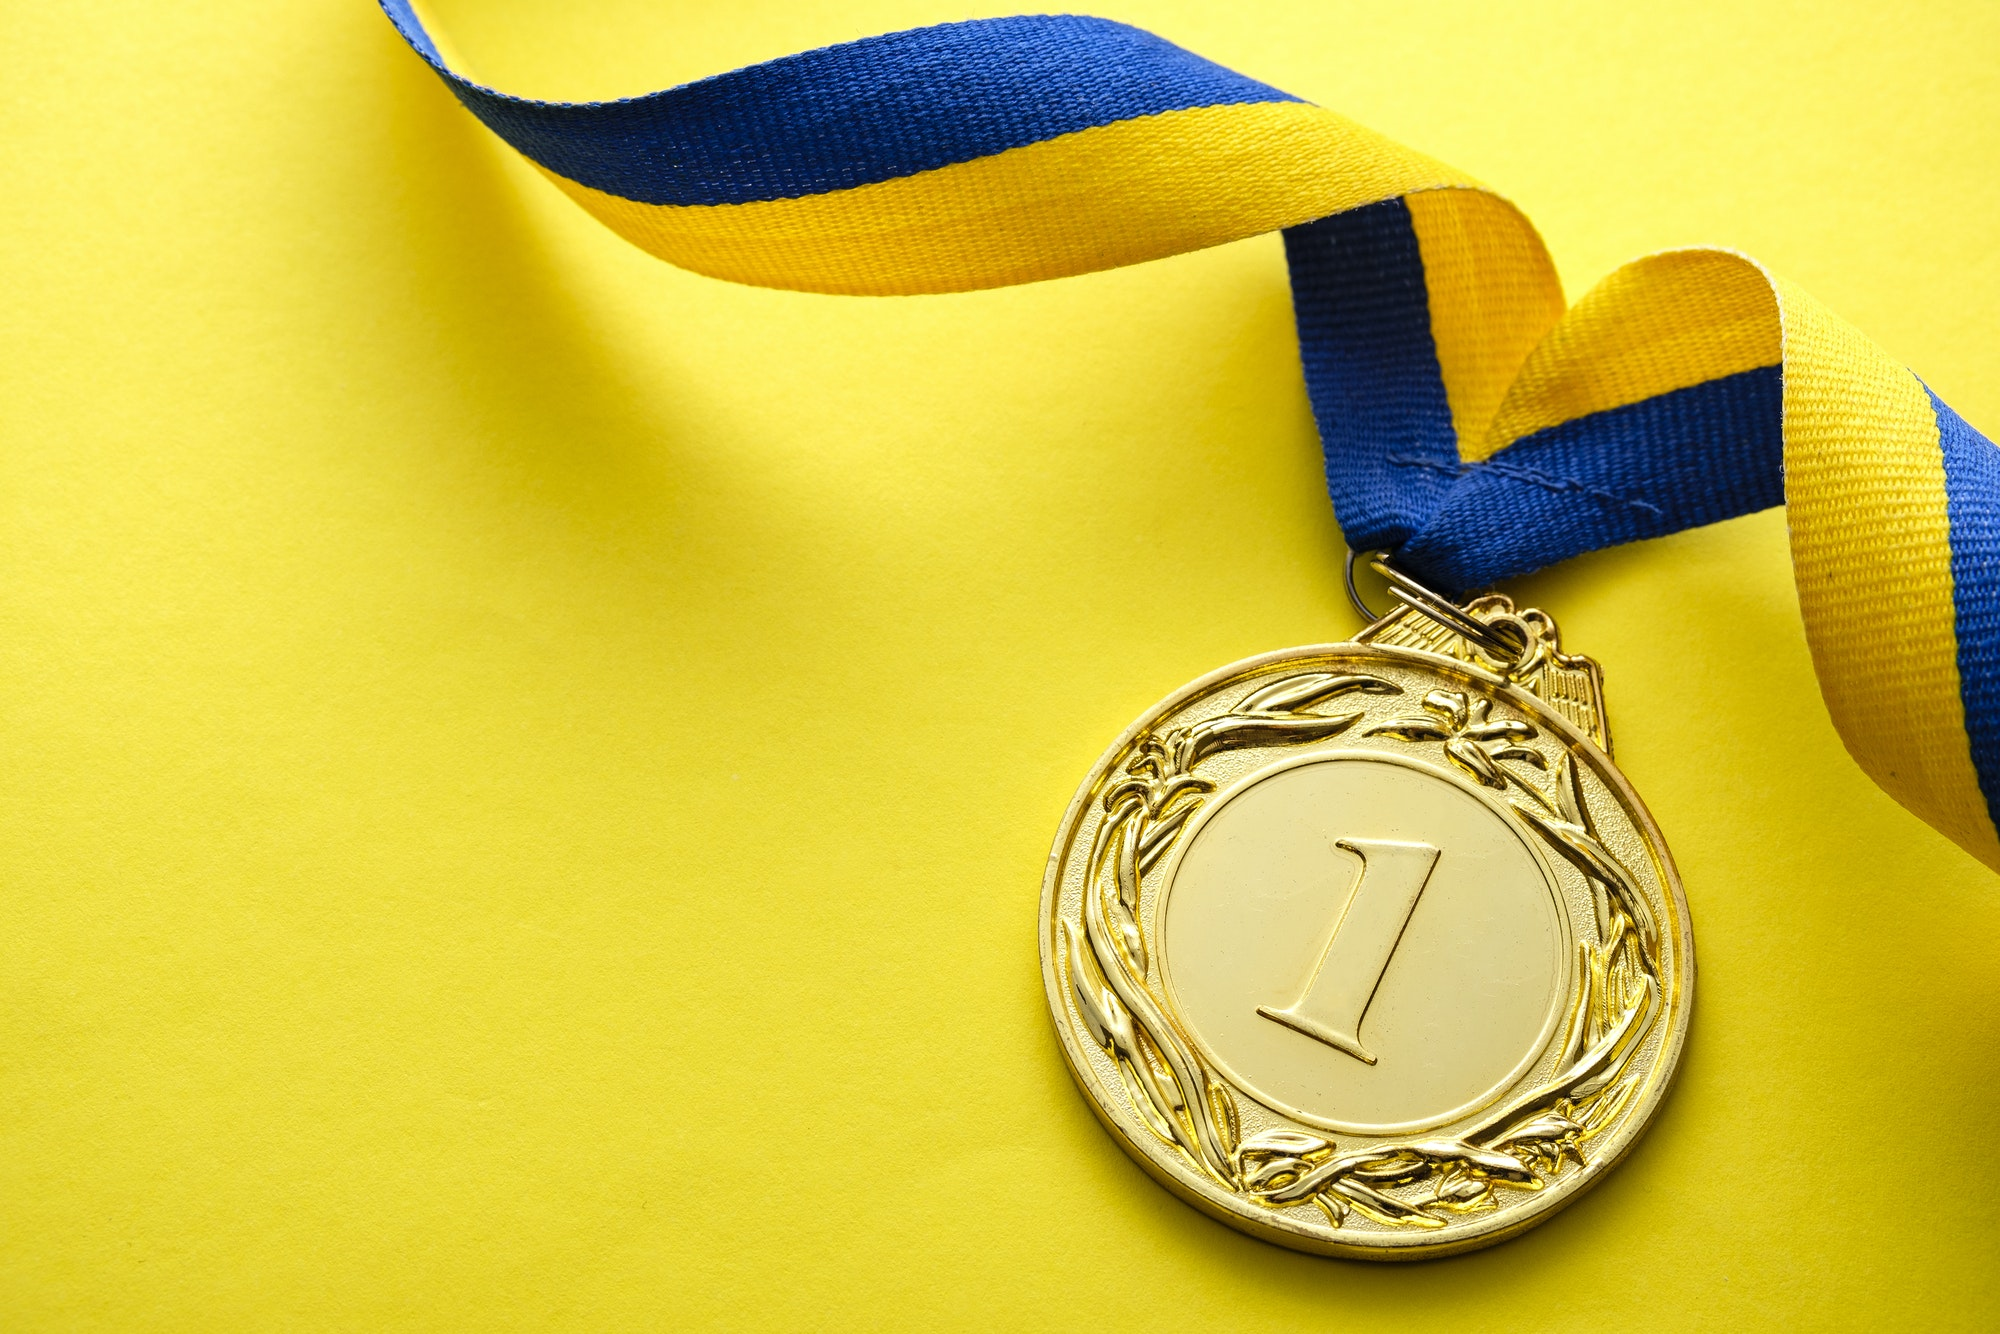 Gold medallion for the winner or champion